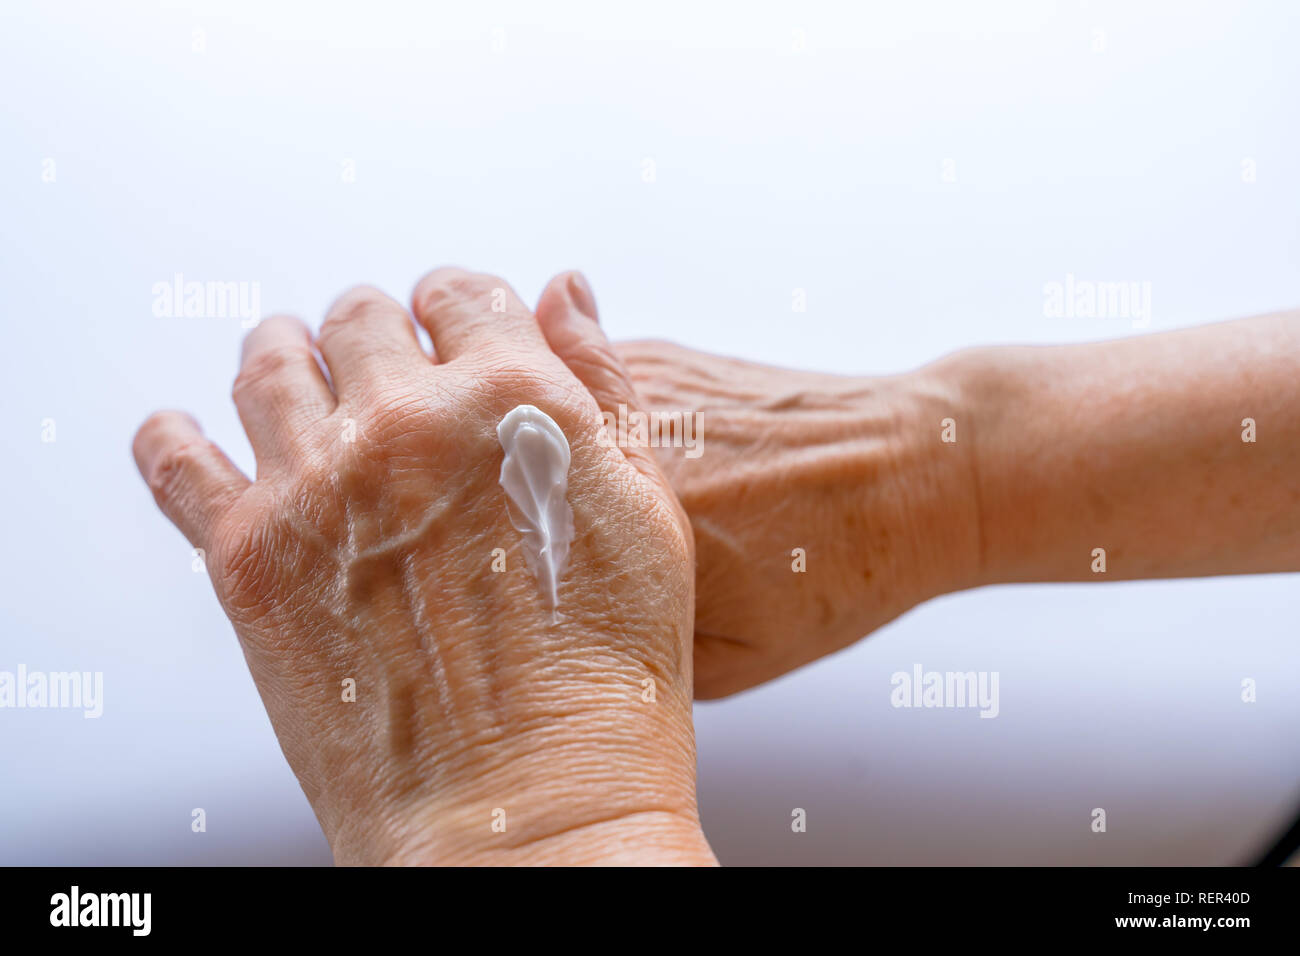 Skin care. Elderly woman applies Cream On Her Hands. Beauty product. - Stock Image